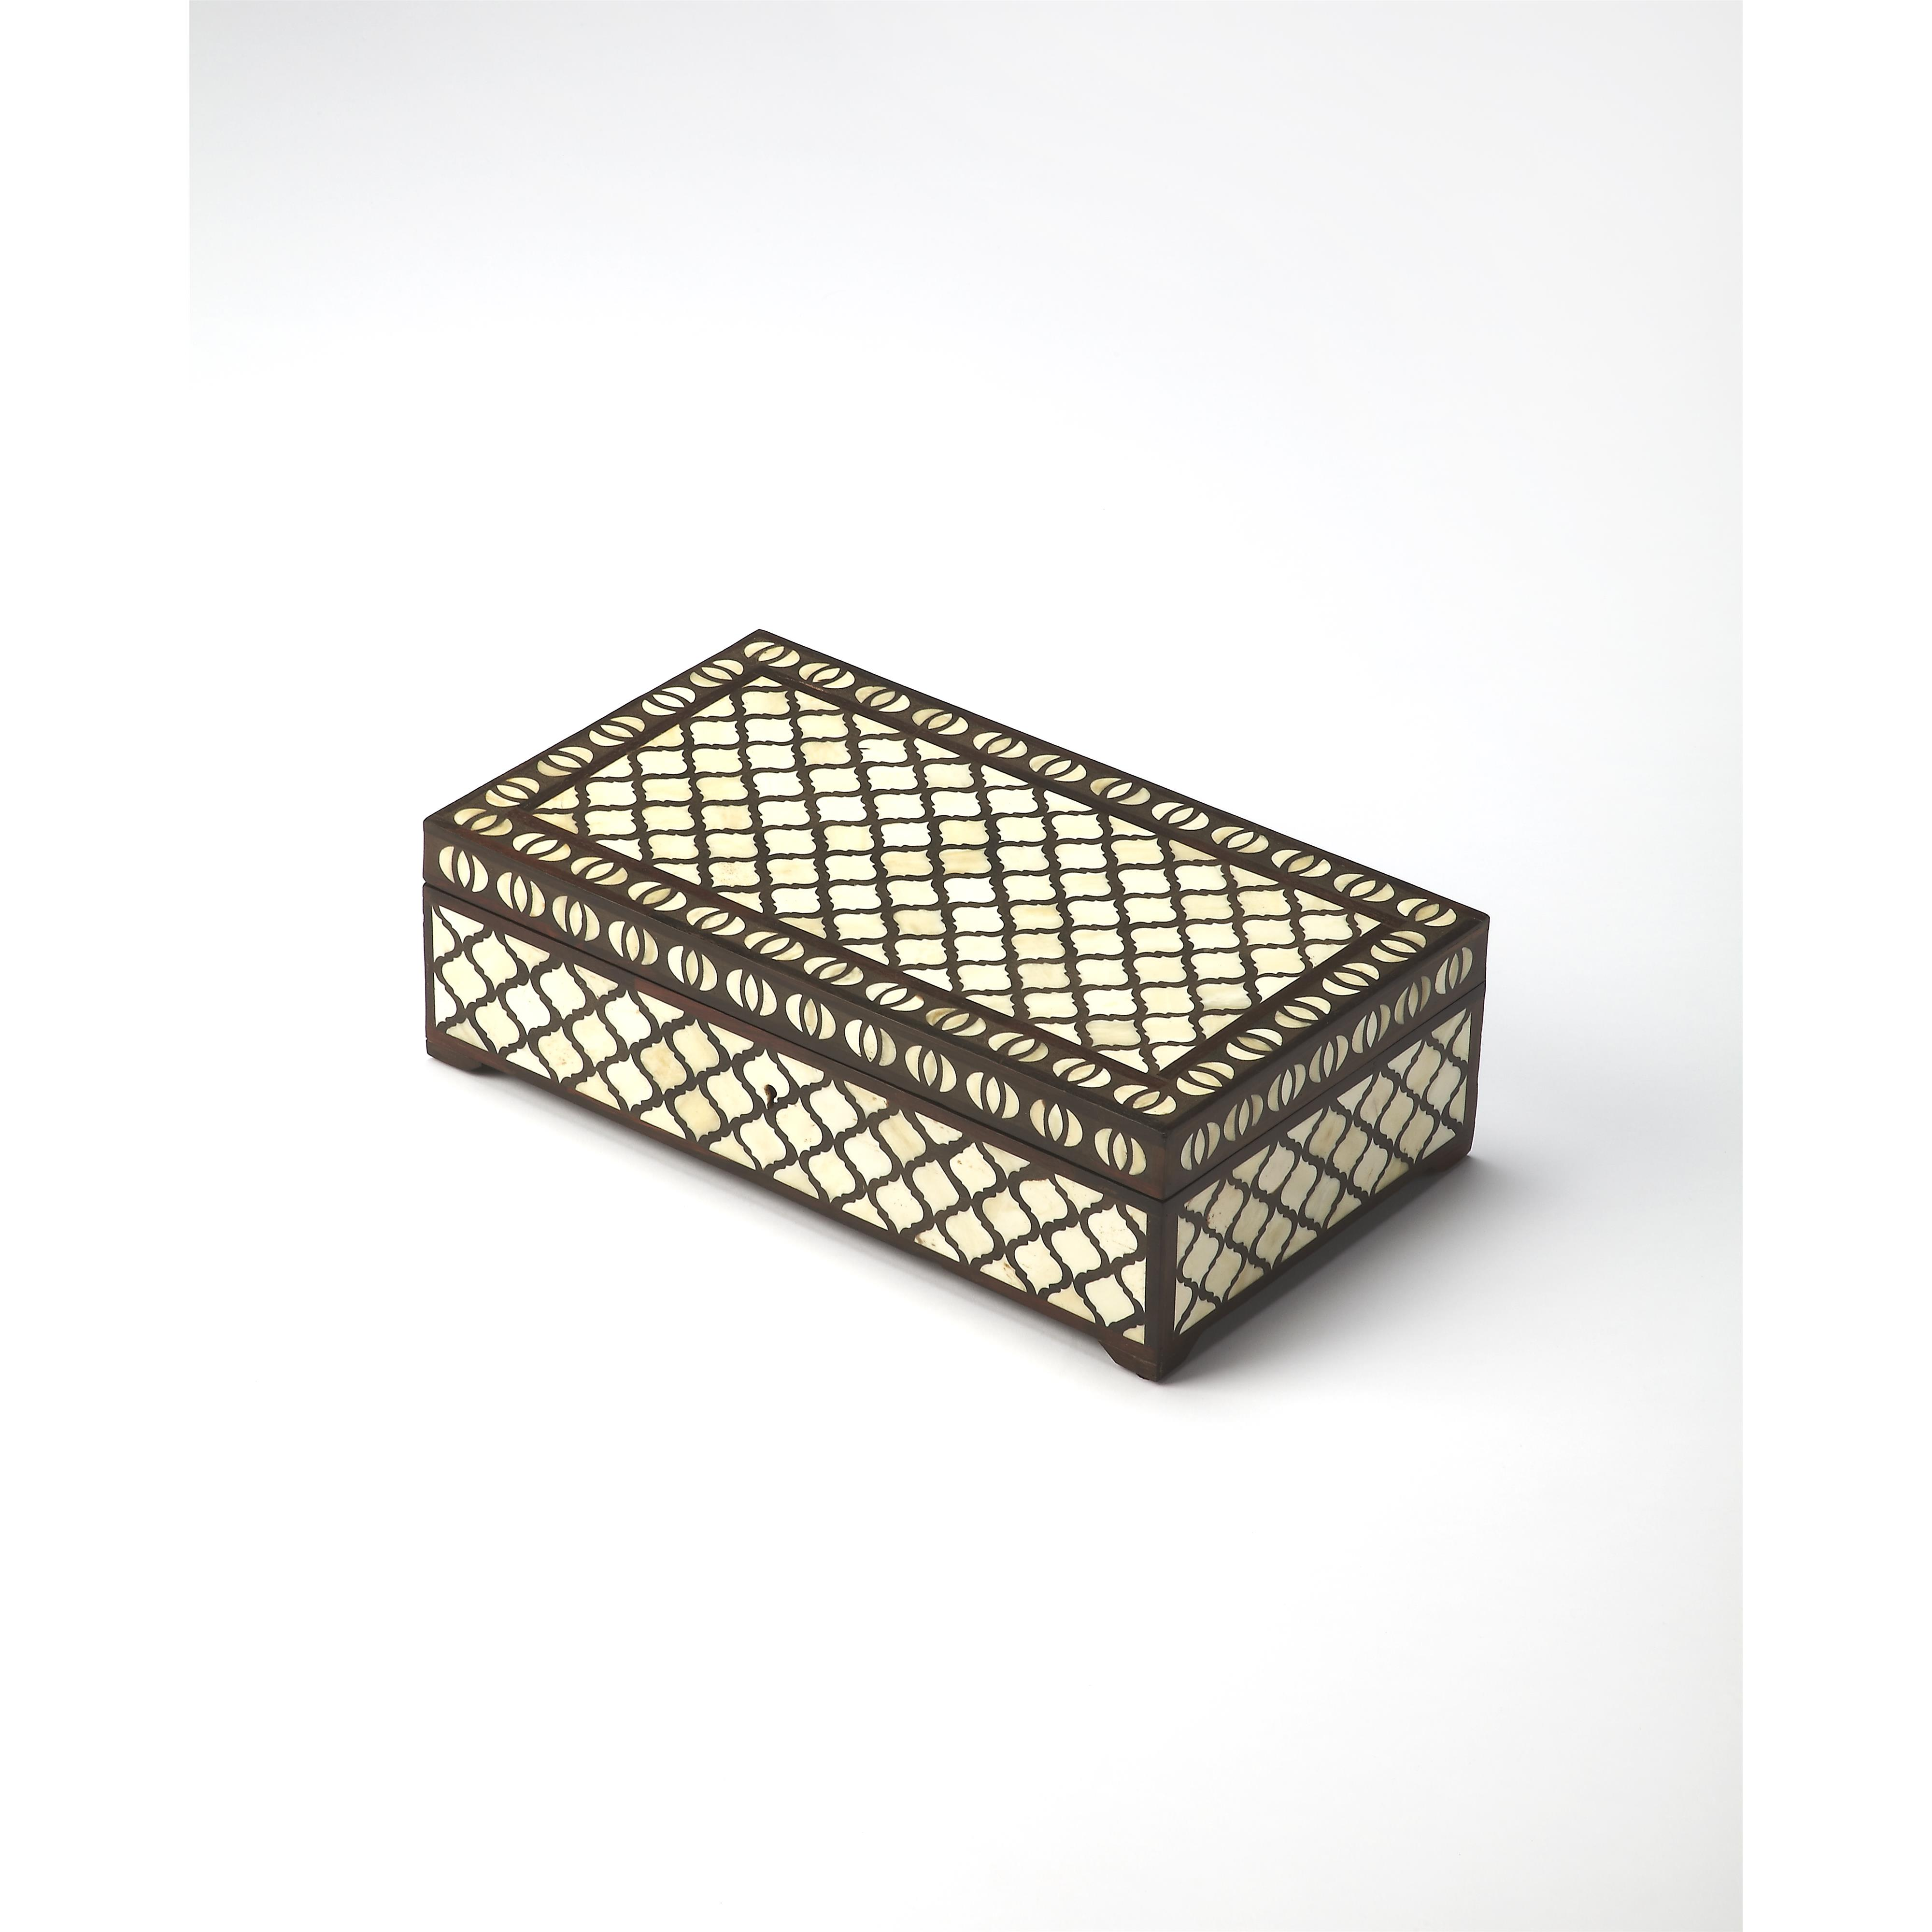 Butler Specialty Company Hors D'oeuvres Storage Box - Item Number: 6117338